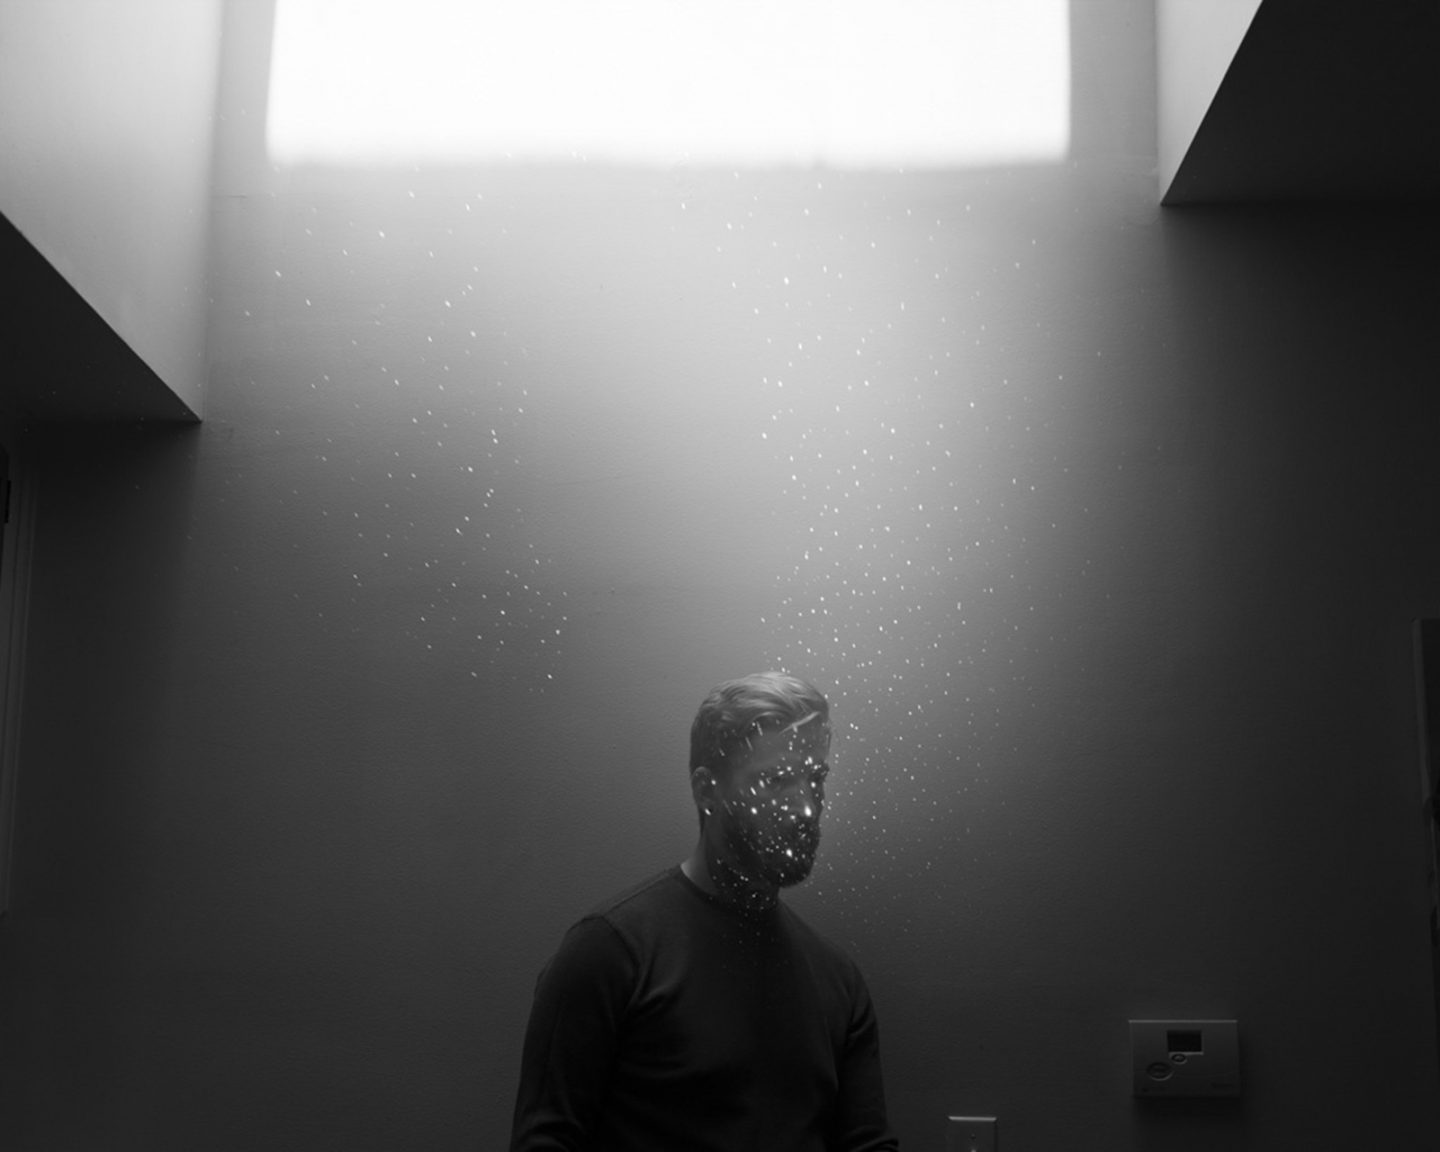 iGNANT-Photography-Daniel-Coburn-Becoming-A-Spector-032